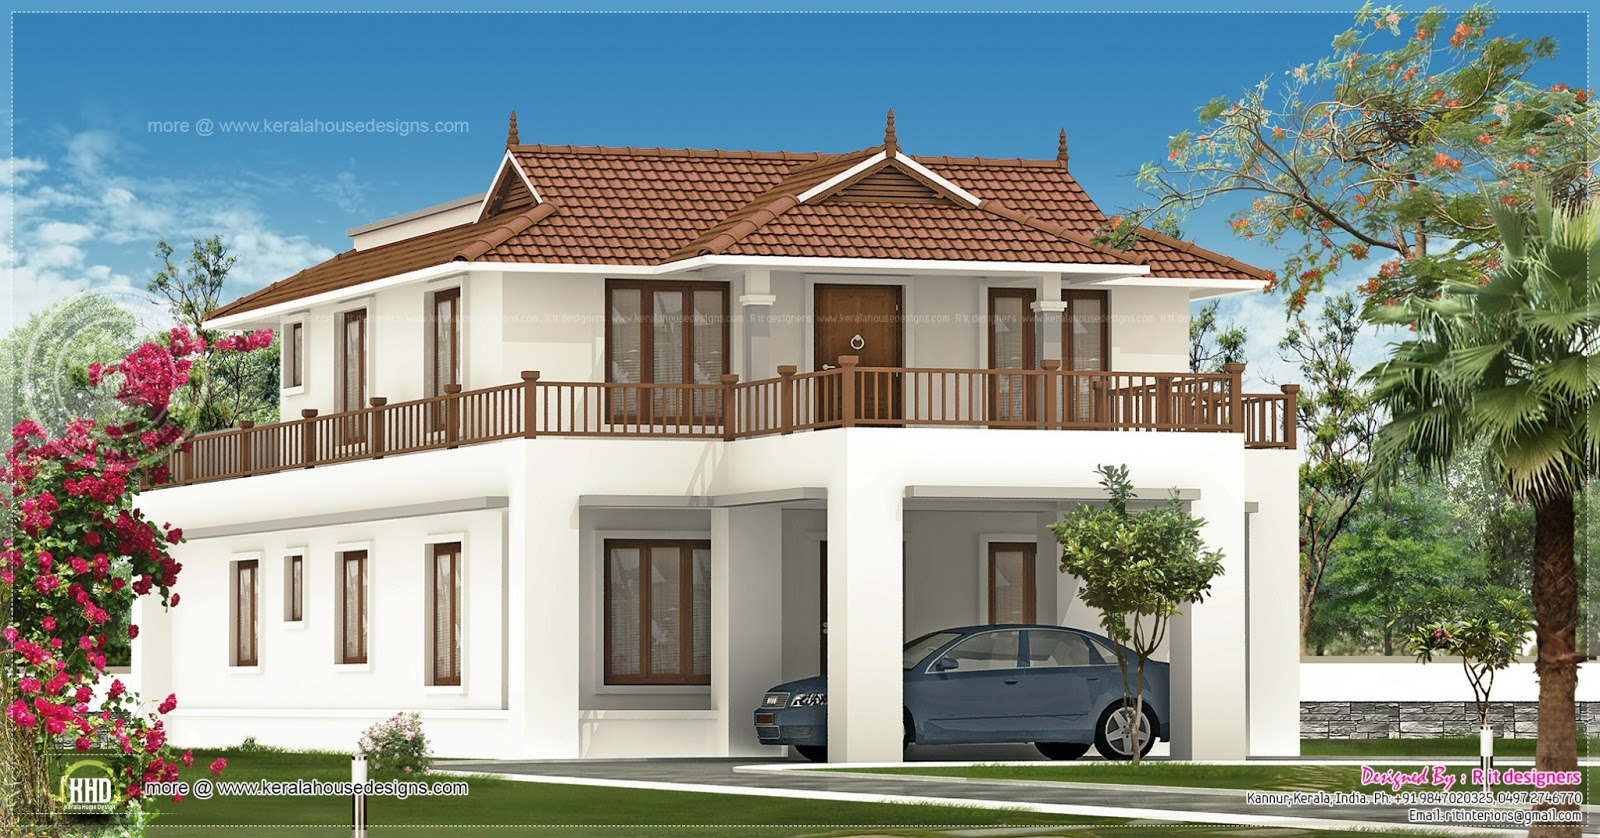 2820 square feet house exterior design home kerala plans for Redesign house exterior